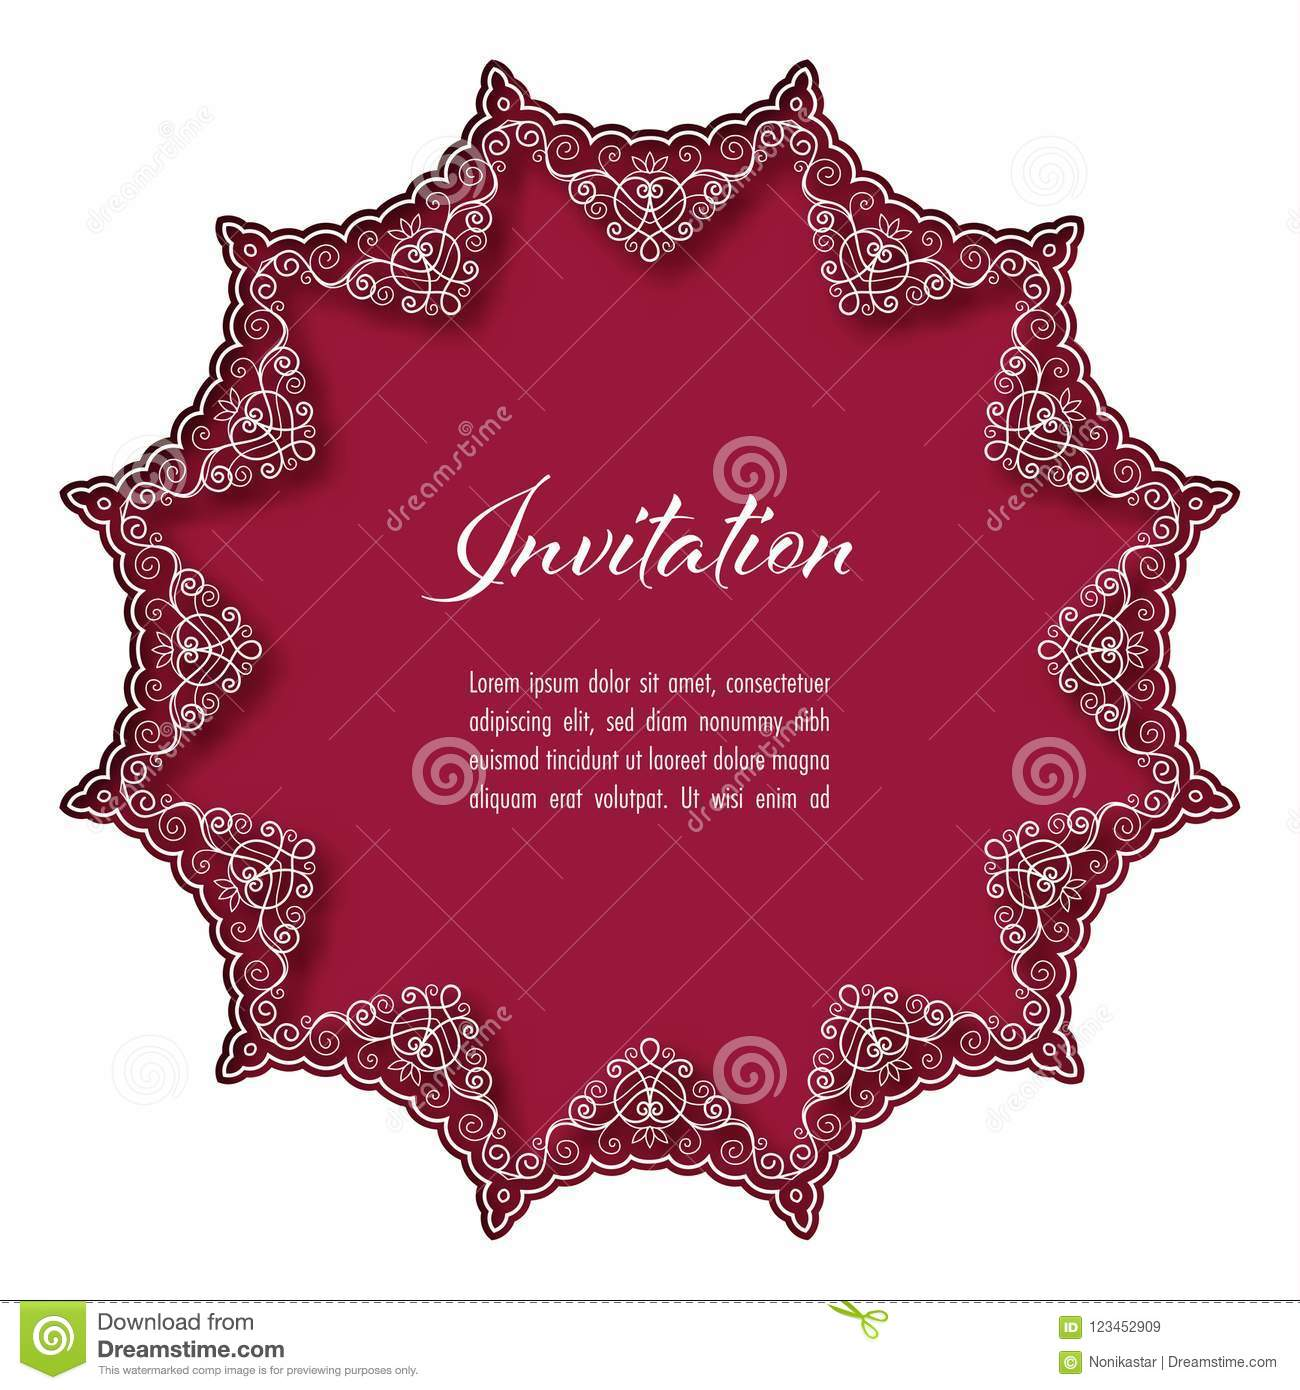 Khmer Wedding Invitation >> Wedding Invitations The Only Khmer One I ...